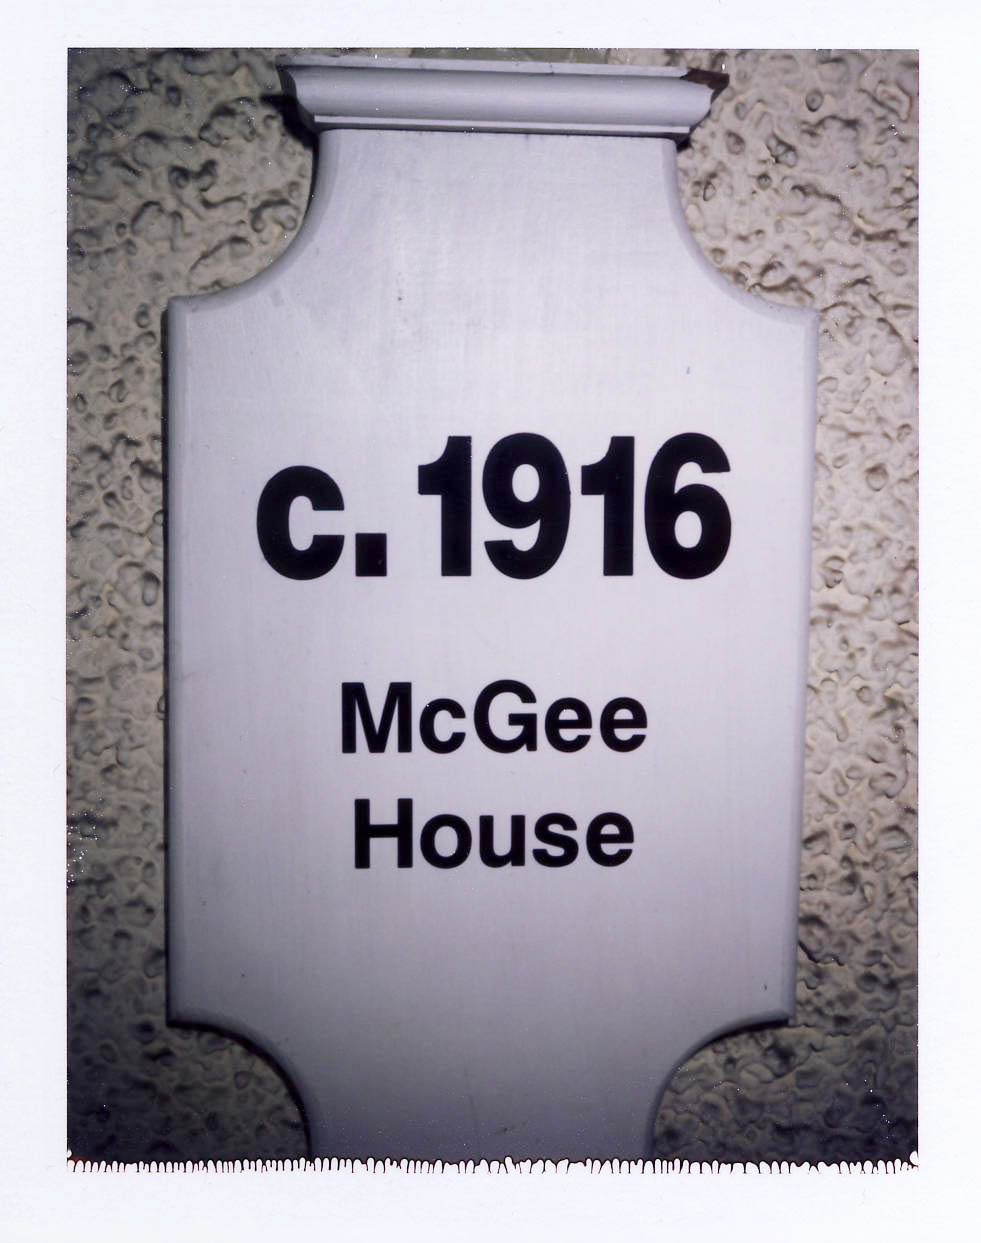 The McGee House - Next to the front door hangs this sign. The McGees were the first real owners of the home. What's amusing about the sign is that it often confuses visitors. First of all, they think the date, 1916, refers to the house address. If that doesn't confuse them the name McGee does. This never occurred to me since I always followed Kim and took it for granted that she knew where her dad lived.